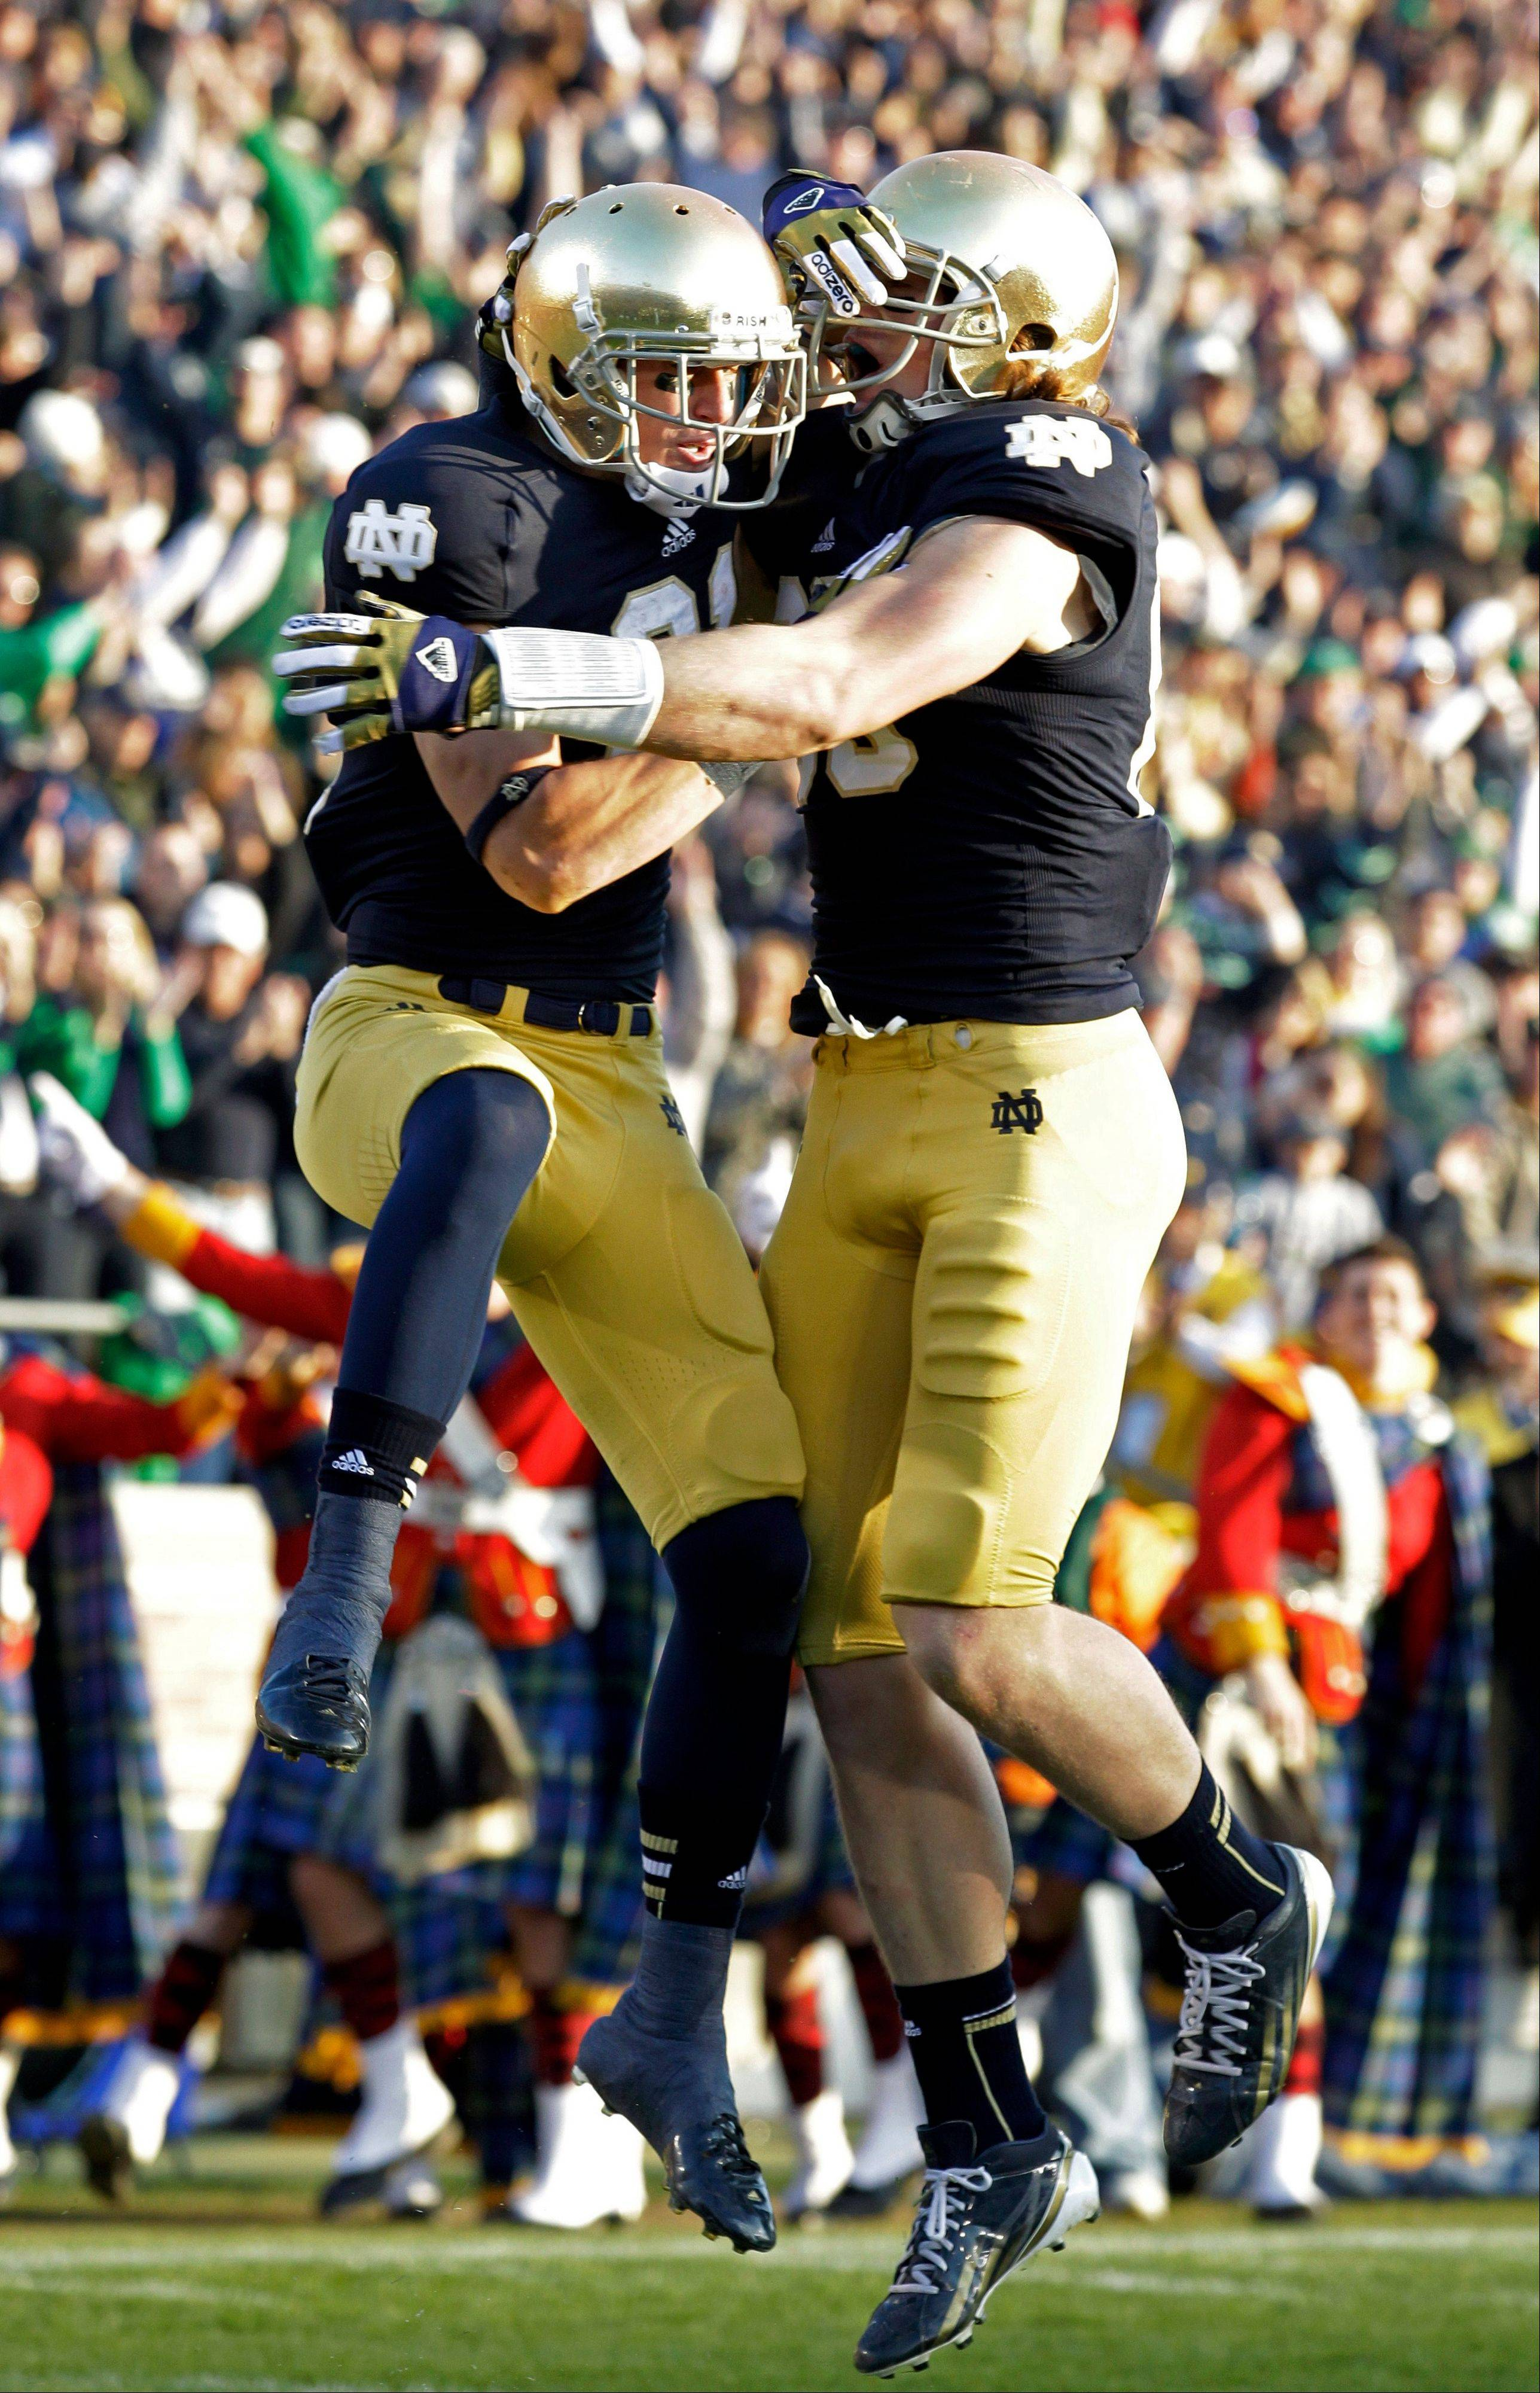 Like players scoring a touchdown, oddsmakers in Las Vegas would be jumping for joy if the BCS title game pits Notre Dame against Alabama, two of the most storied programs in college football history.